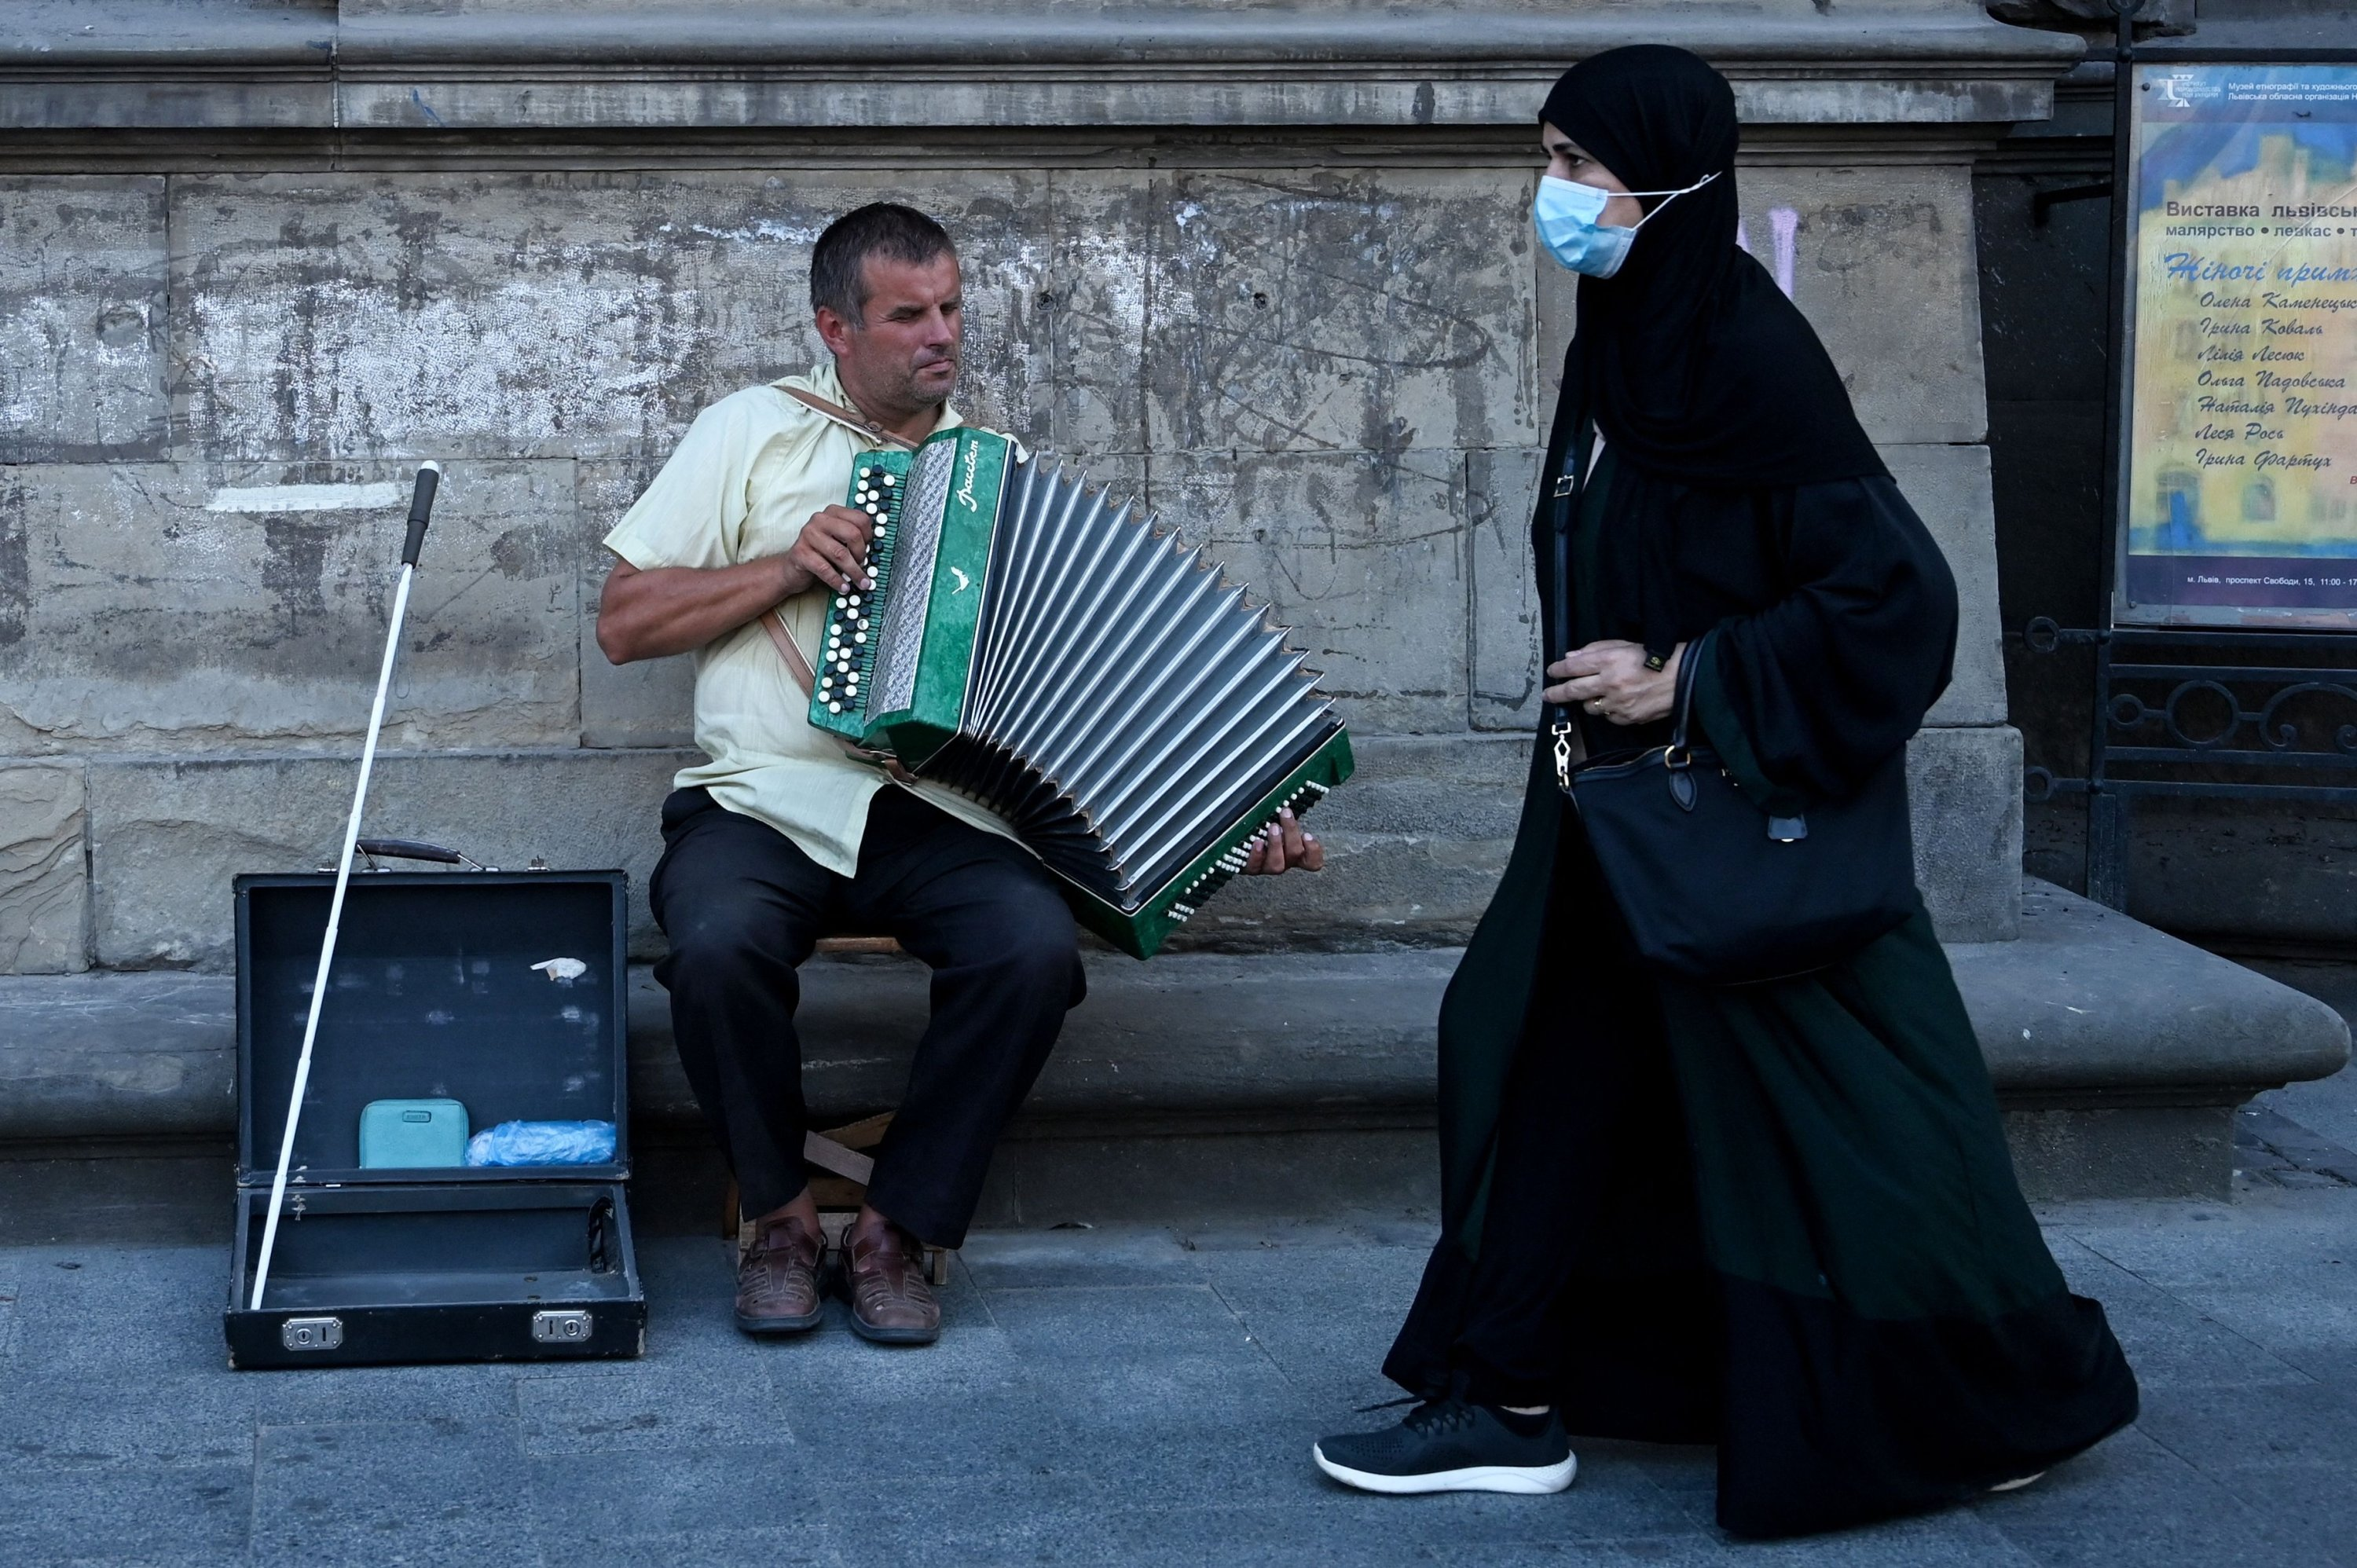 A woman from the Middle East walks past a street musician in Lviv, Ukraine, Aug. 14, 2021. (AFP Photo)